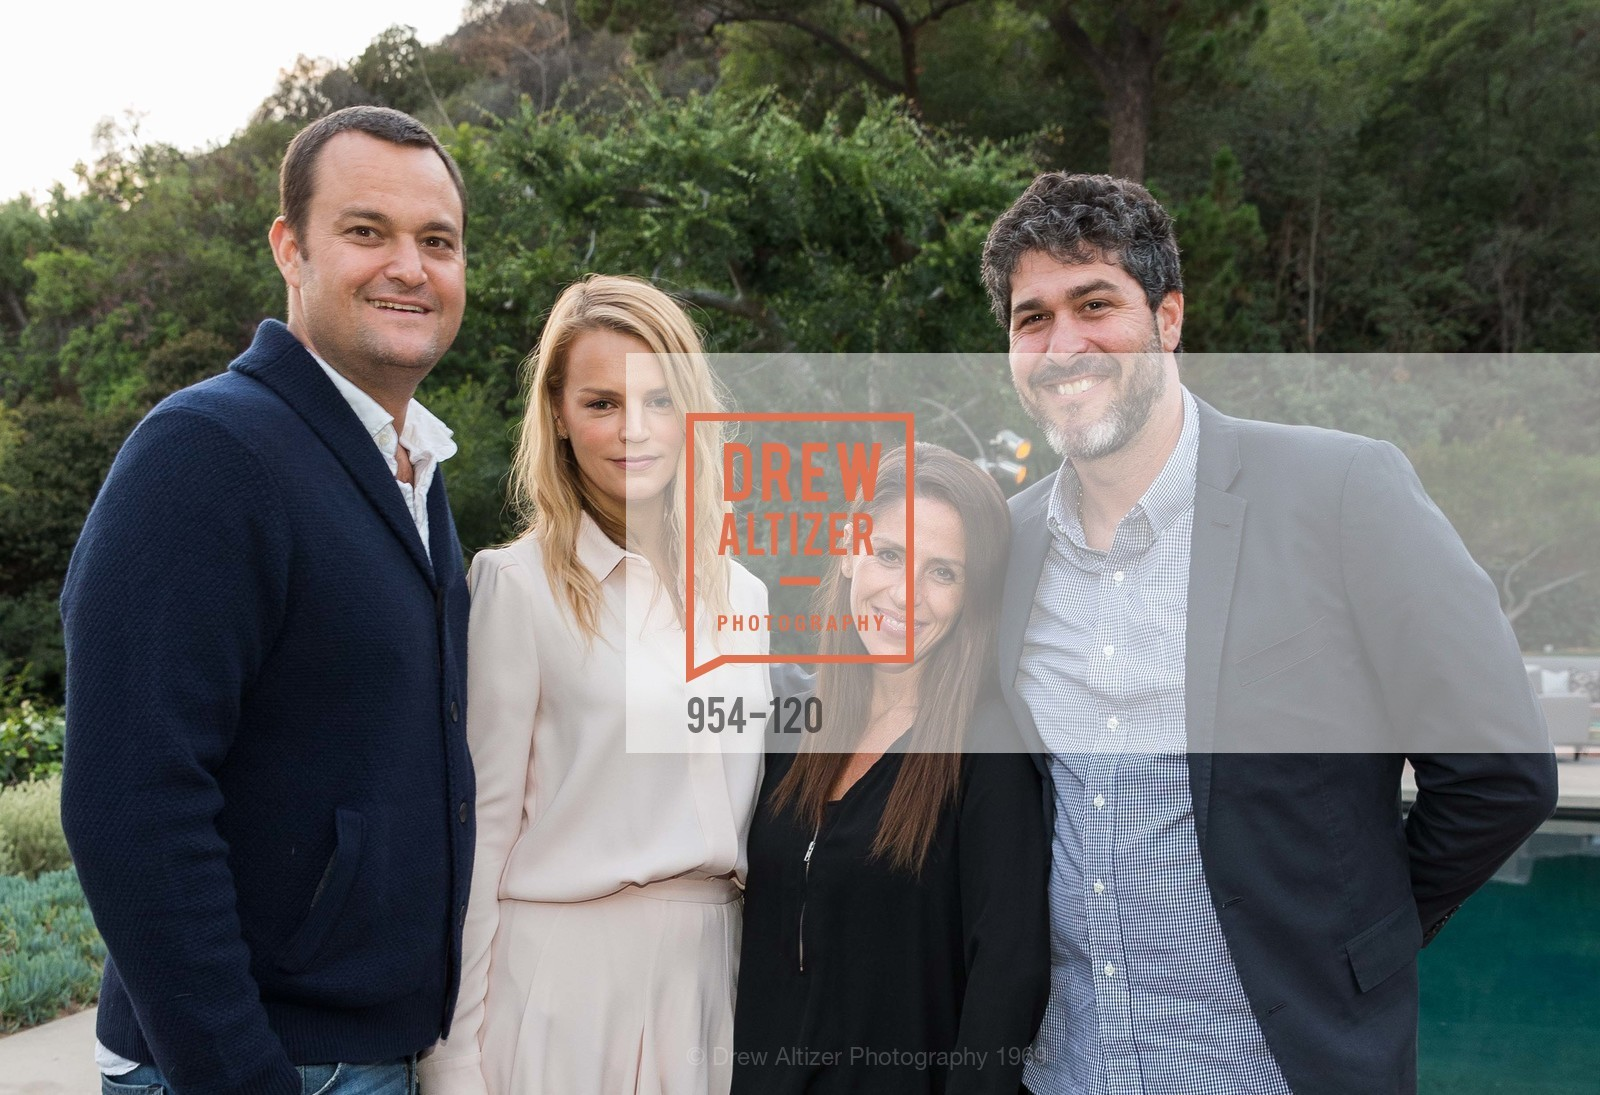 Jamie Patricof, Kely Sawyer Patricof, Soleil Moon Frye, Jason Goldberg, SHYP Los Angeles Launch Party, Simon House. 1113 North Hillcrest Road, May 19th, 2015,Drew Altizer, Drew Altizer Photography, full-service agency, private events, San Francisco photographer, photographer california